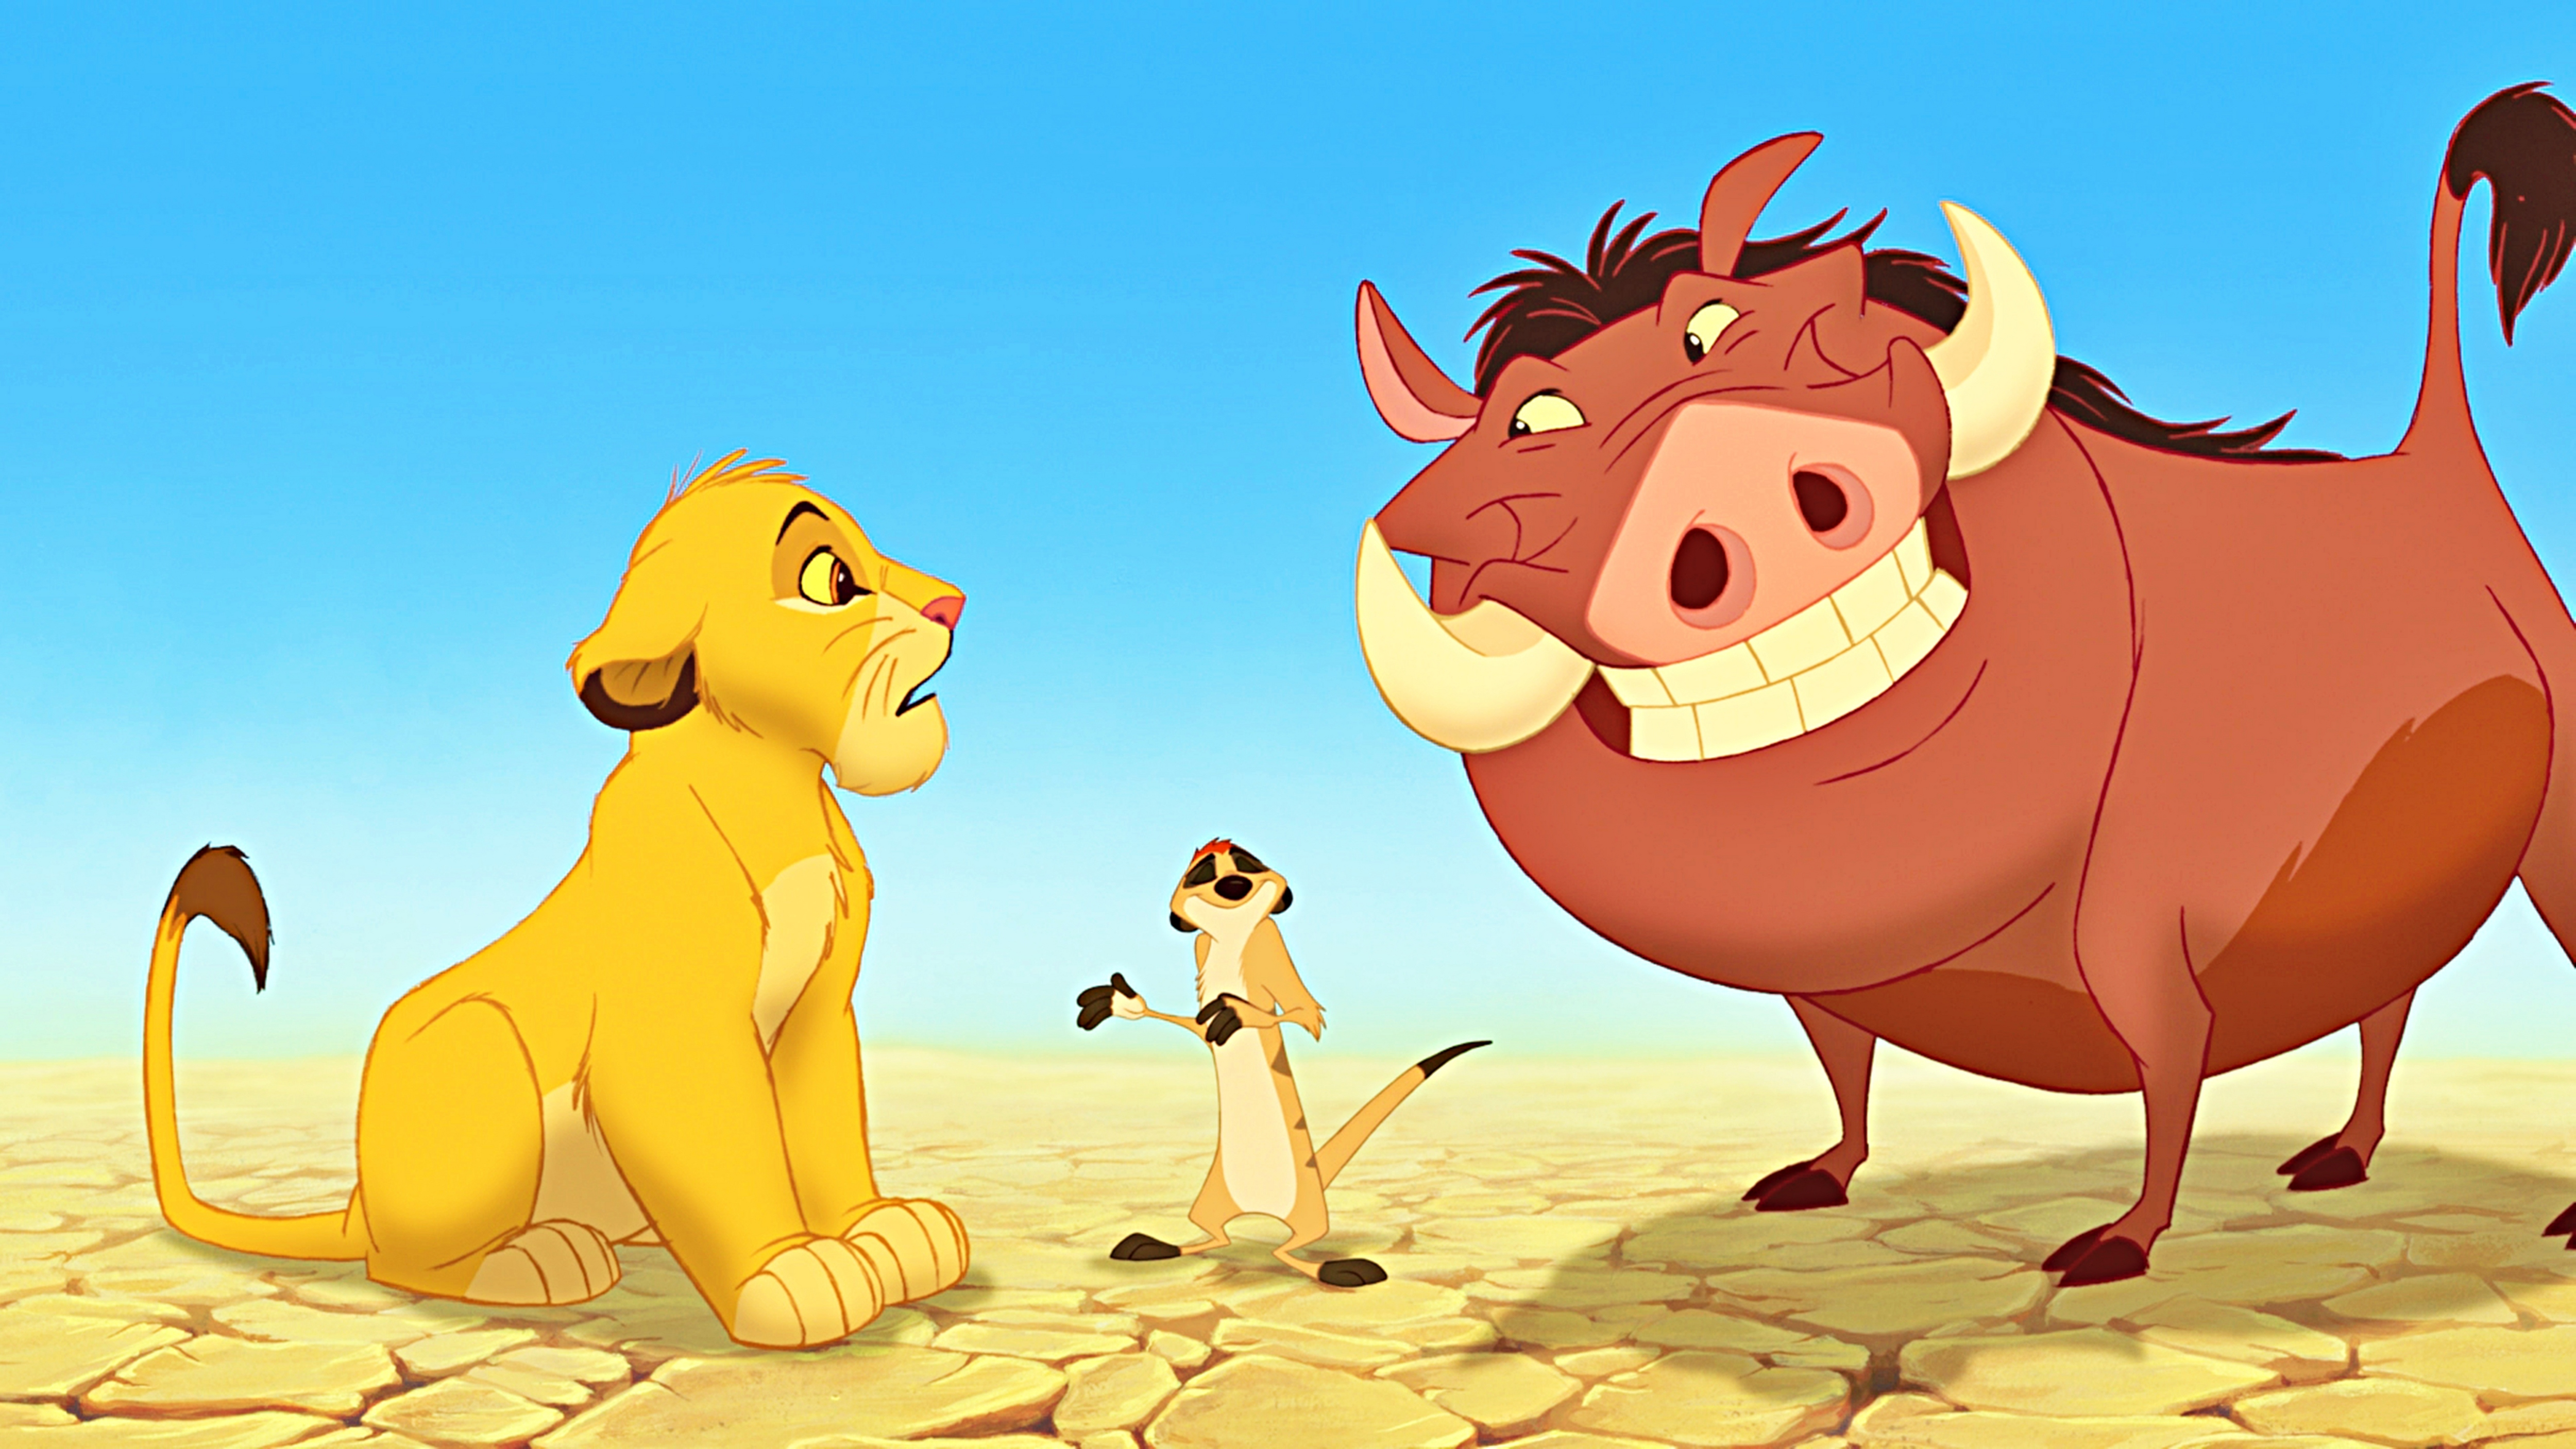 timon and pumbaa images